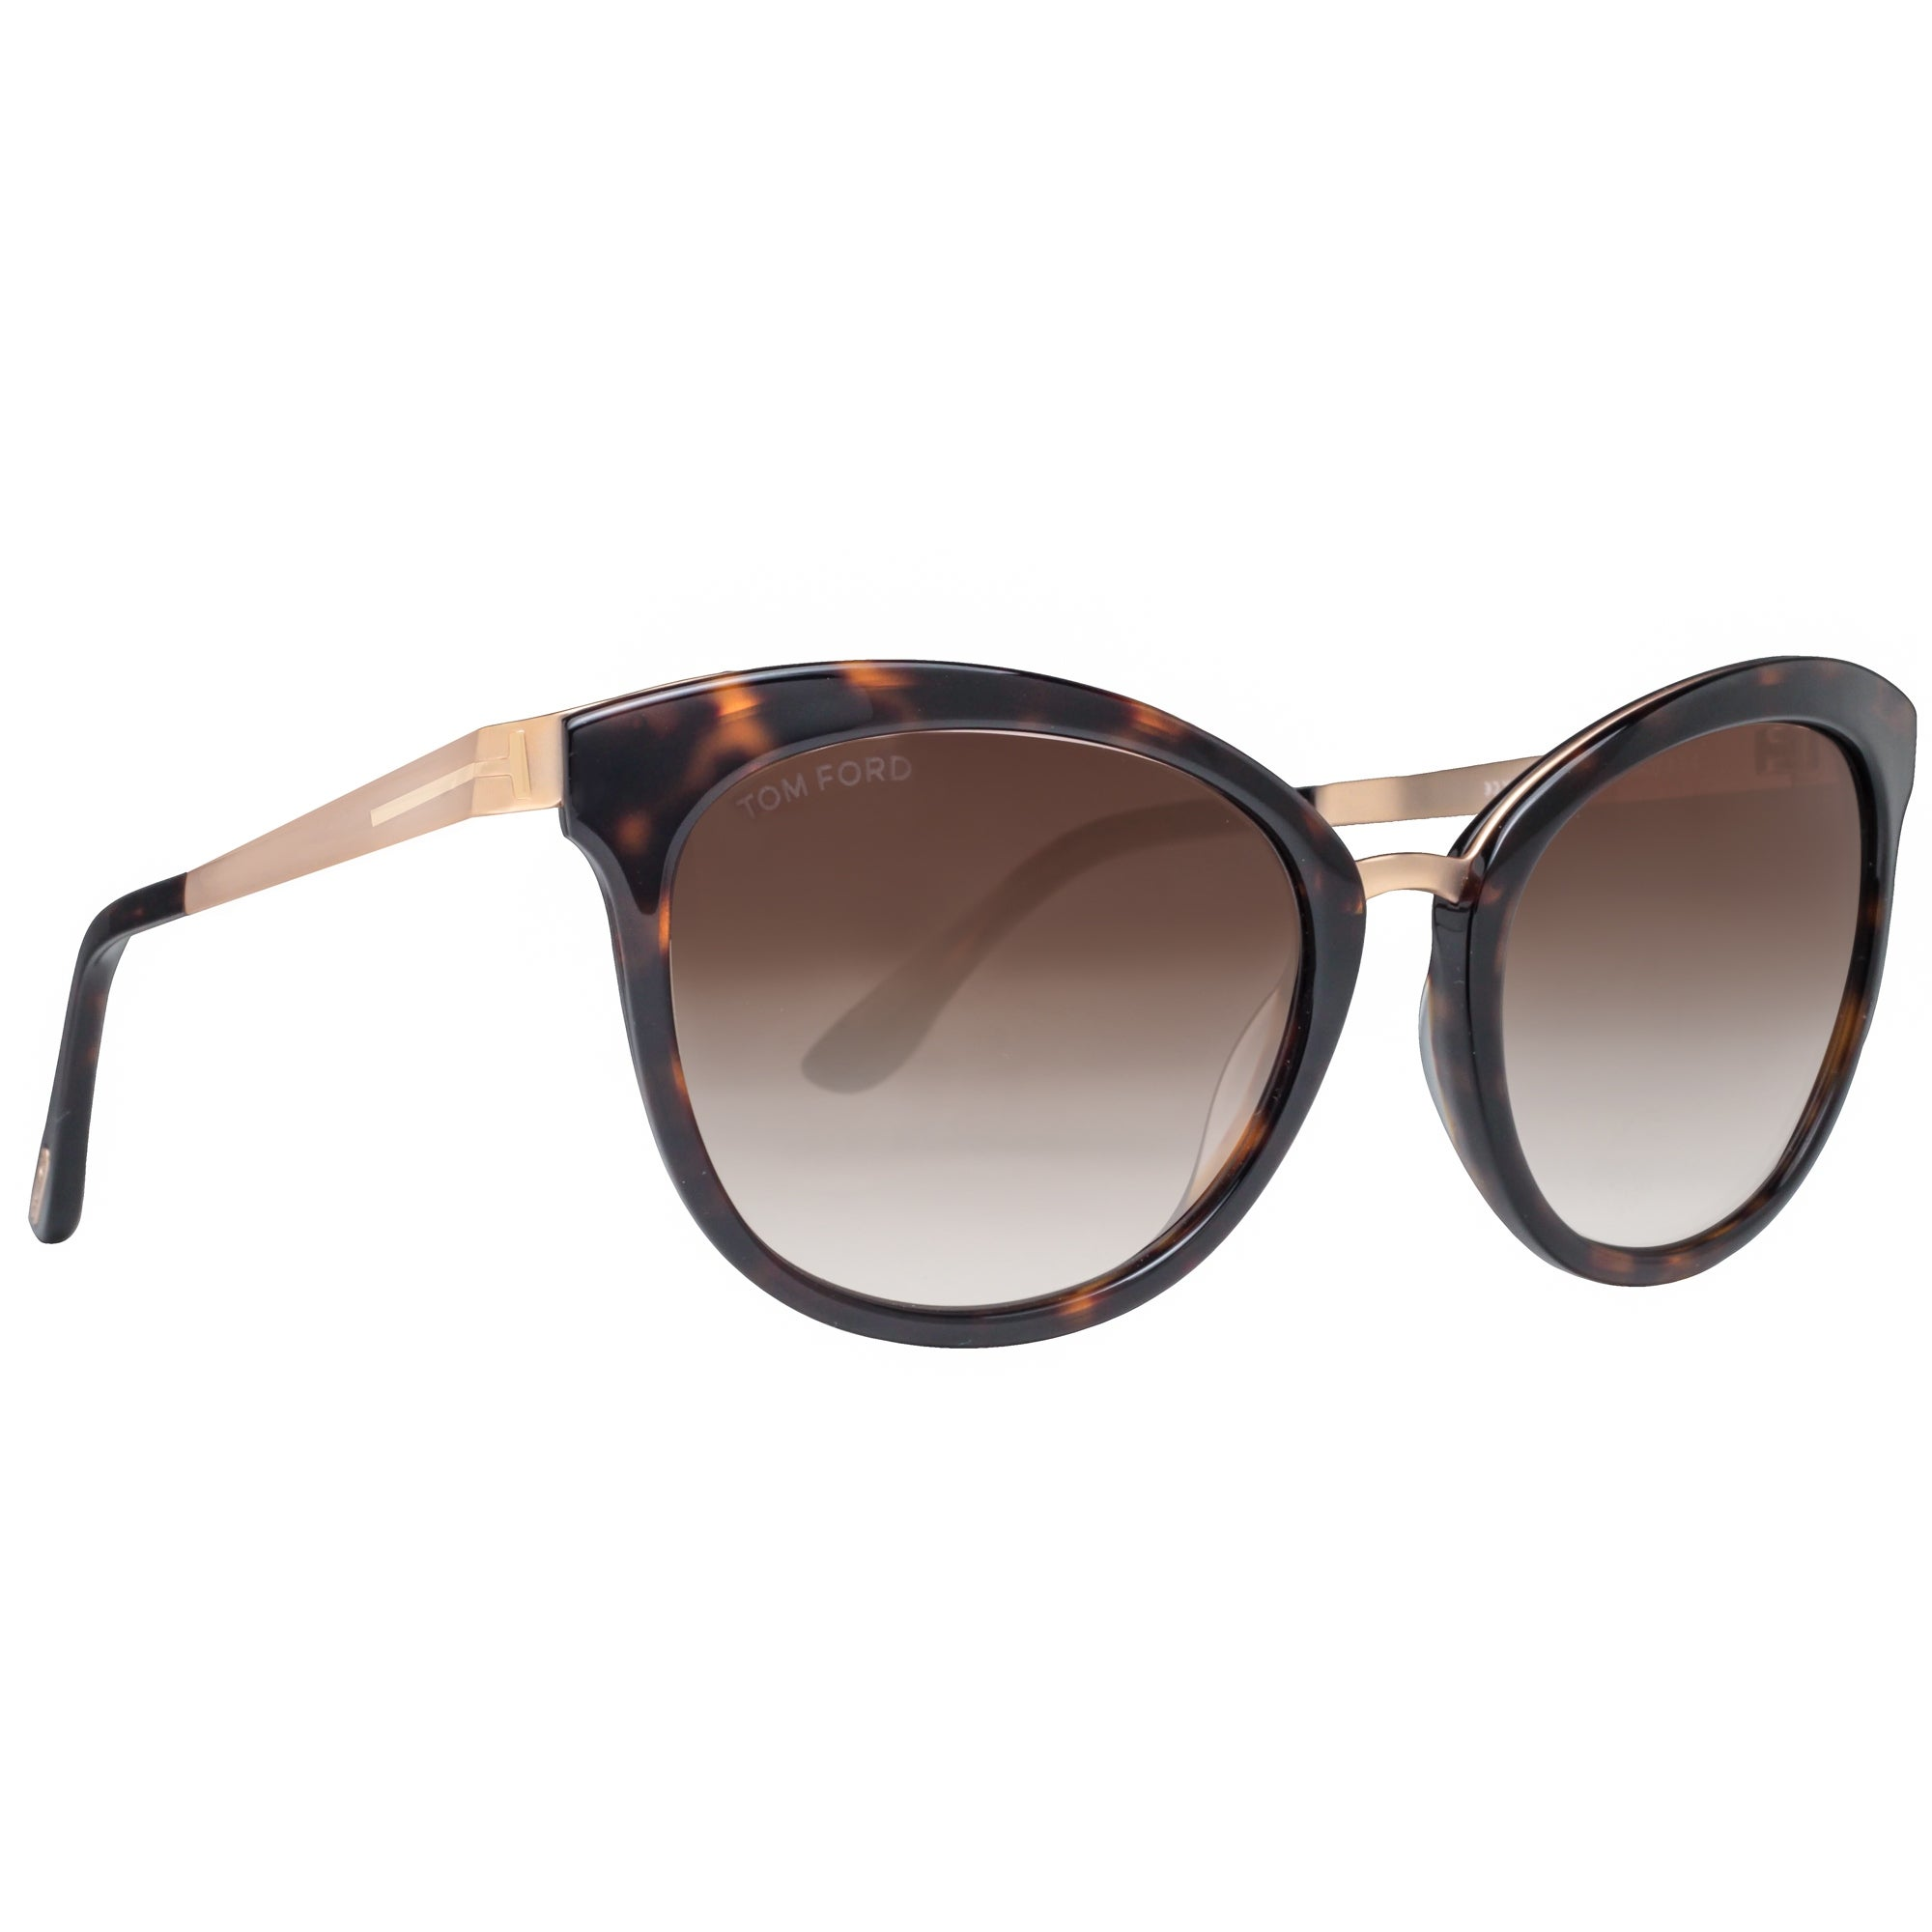 6ad6e1559ea Shop Tom Ford Emma TF 461 52G Gold Havana Brown Gradient Women s Cat Eye  Sunglasses - havana brown gold - 56mm-19mm-130mm - Ships To Canada -  Overstock.ca - ...